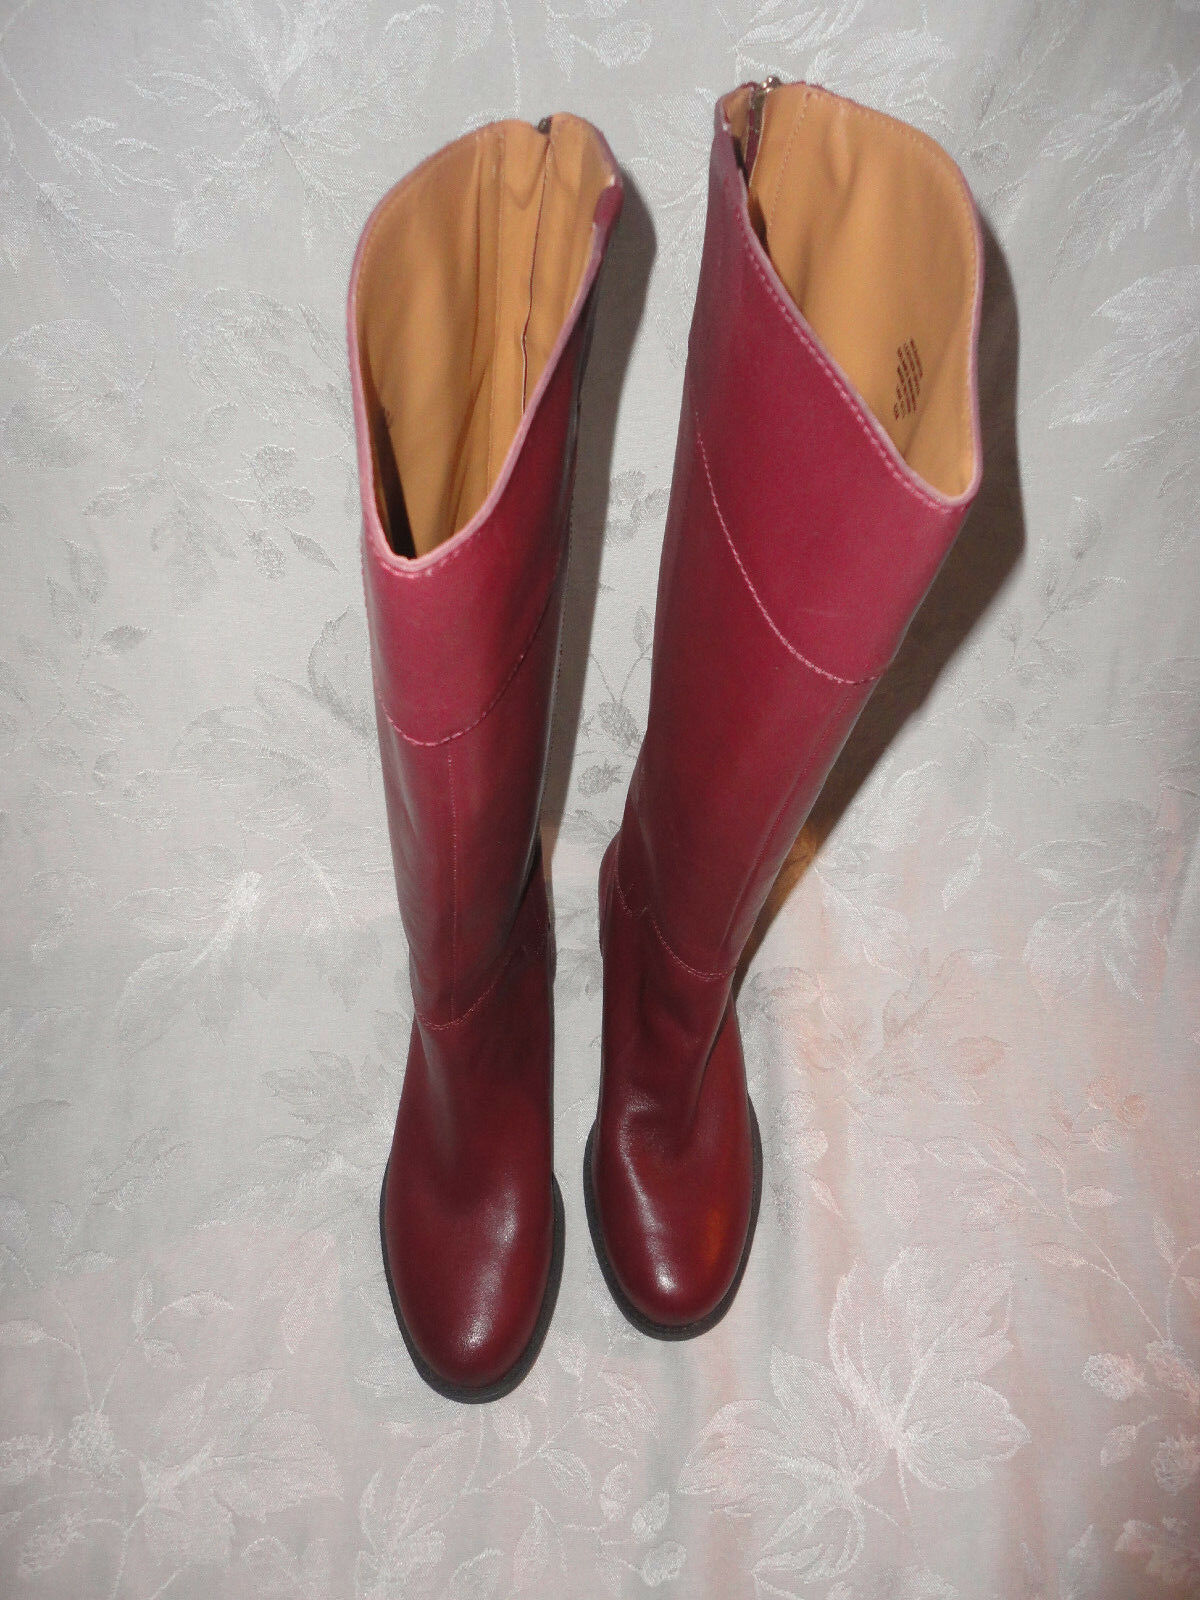 Nine West Vintage American COUNTER boots in WINE Größe 6 NEU box 169 VACOUNTER